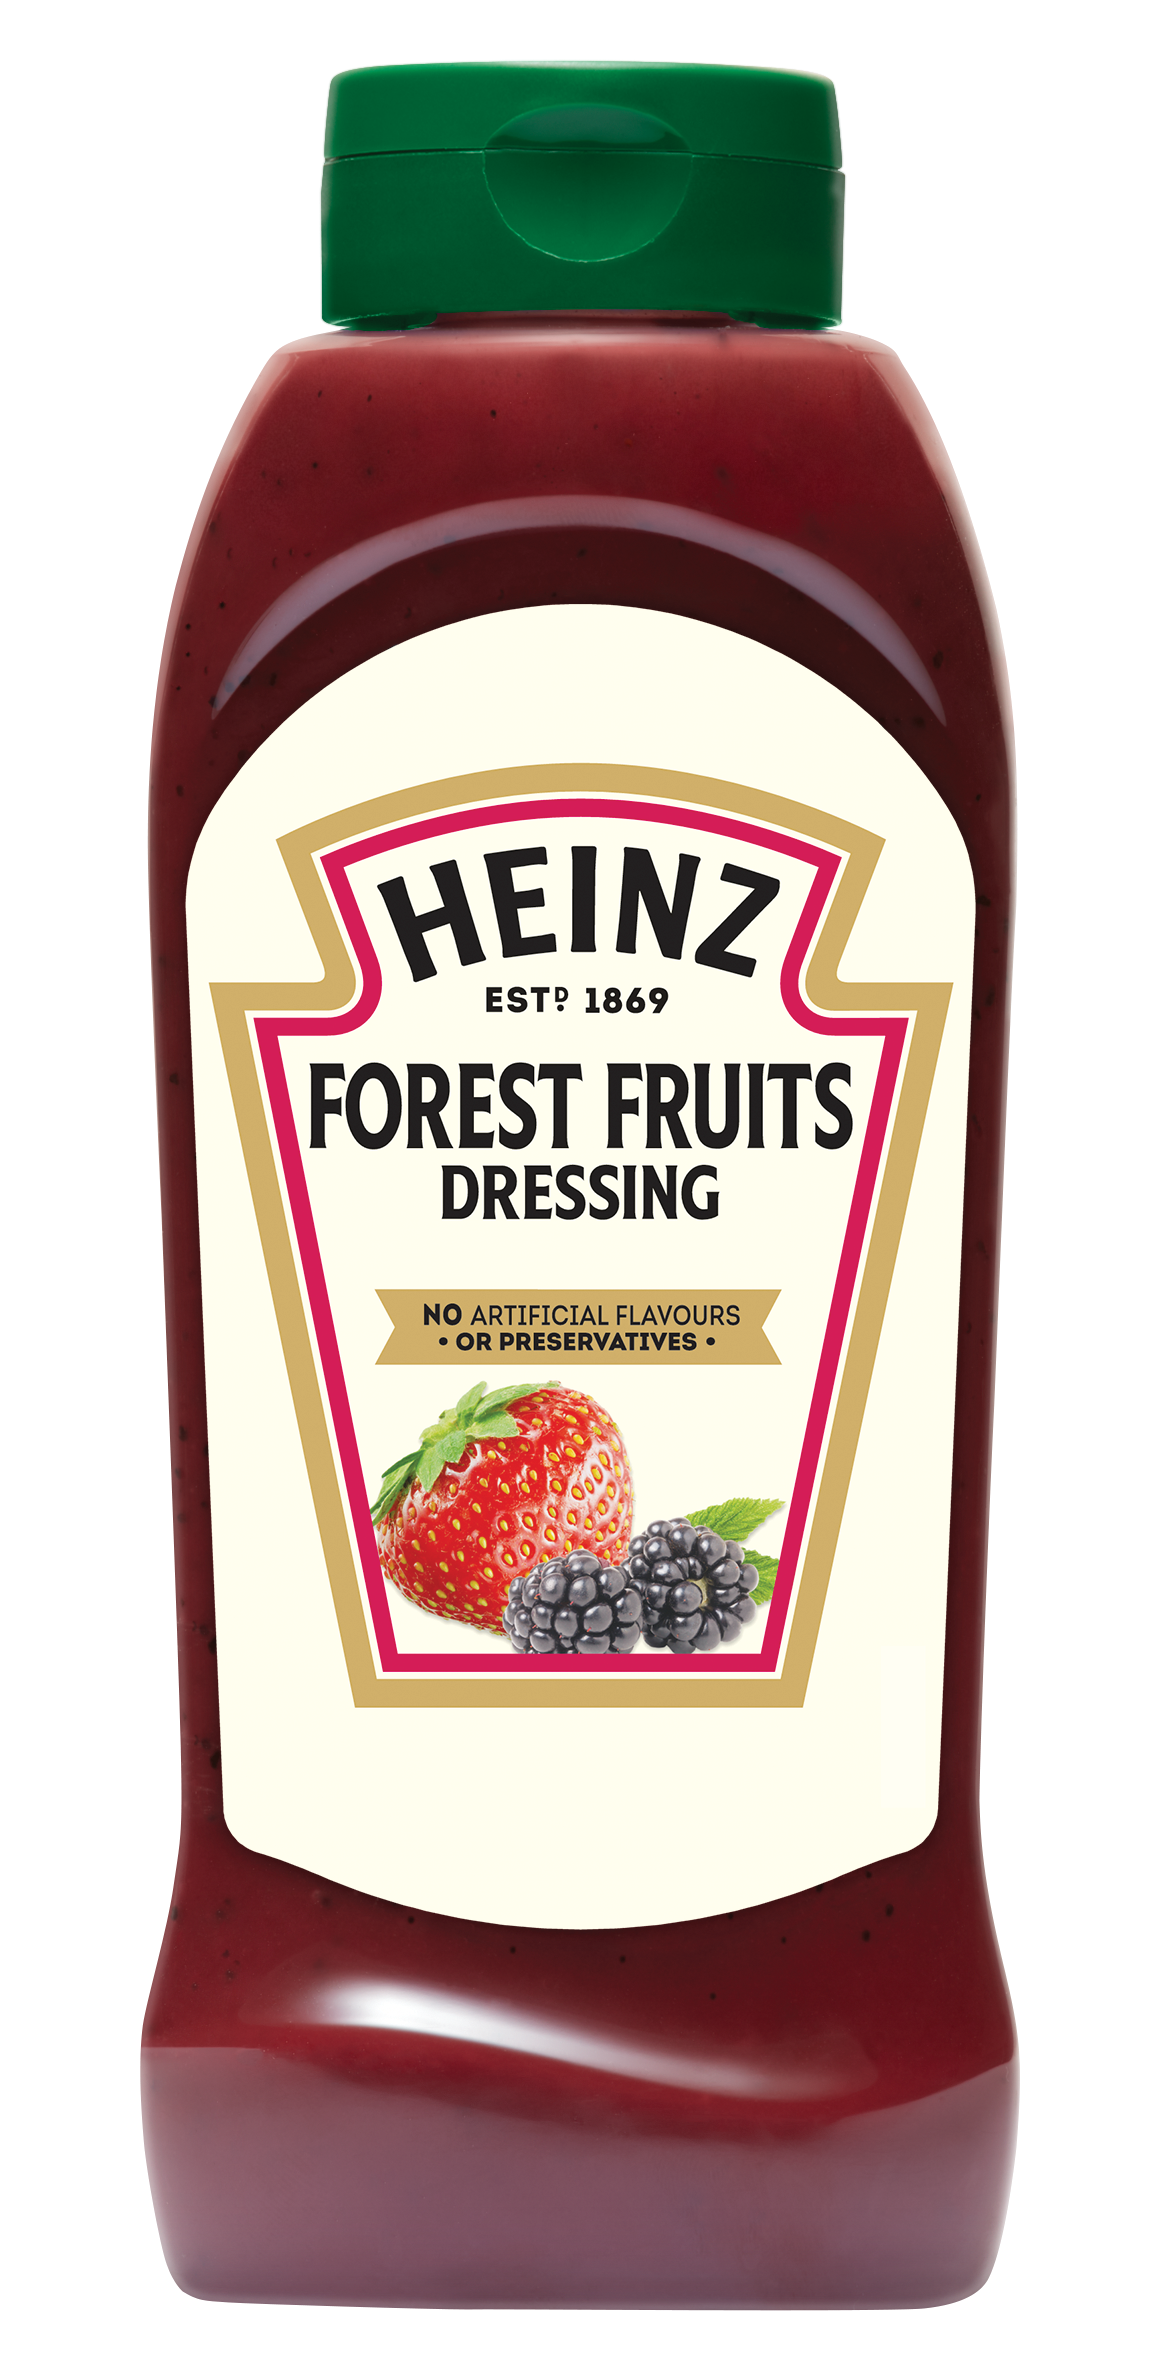 Heinz Fruity Dressing 800ml Up Right image